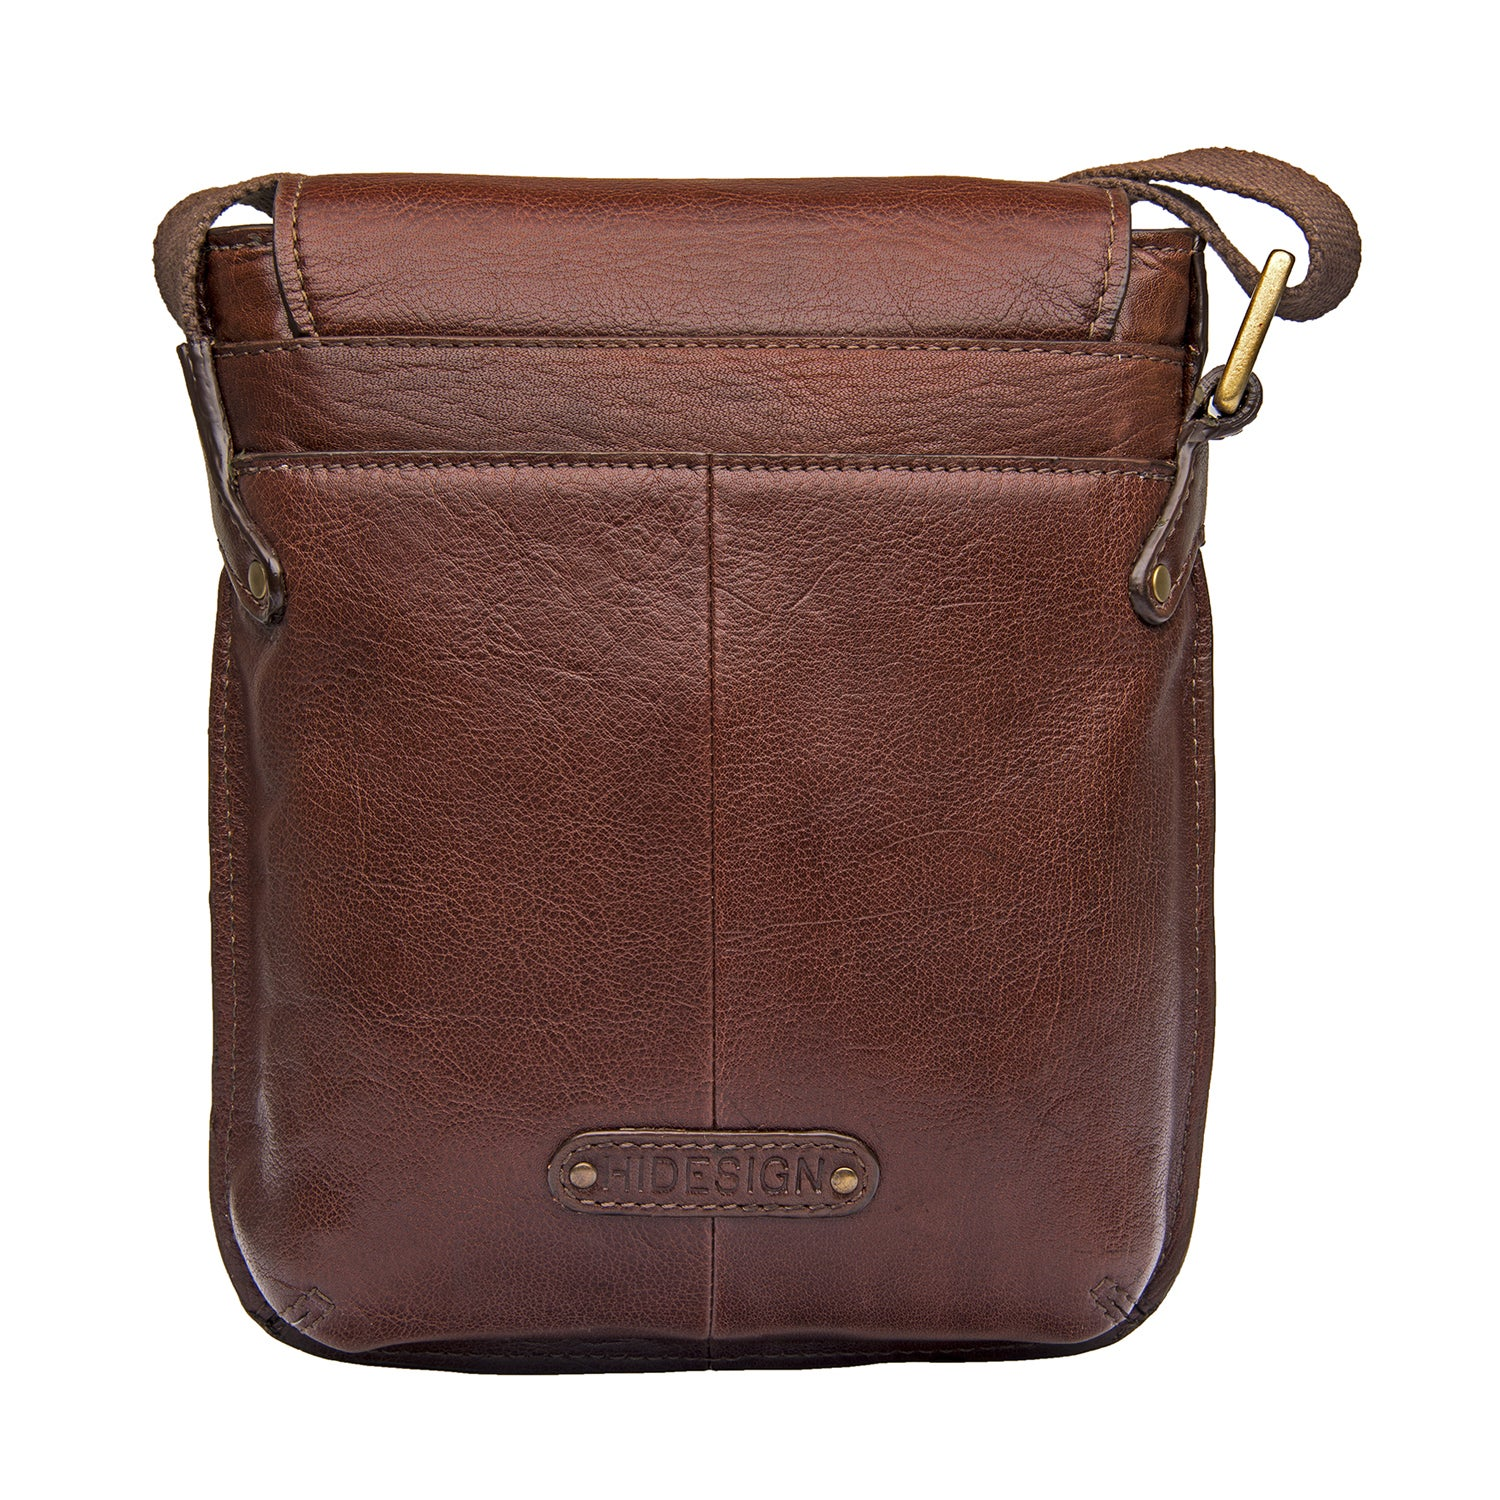 8e294c648708 Shop Hidesign Vespucci Brown Leather Small Crossbody Messenger Bag - On  Sale - Free Shipping Today - Overstock - 14356614